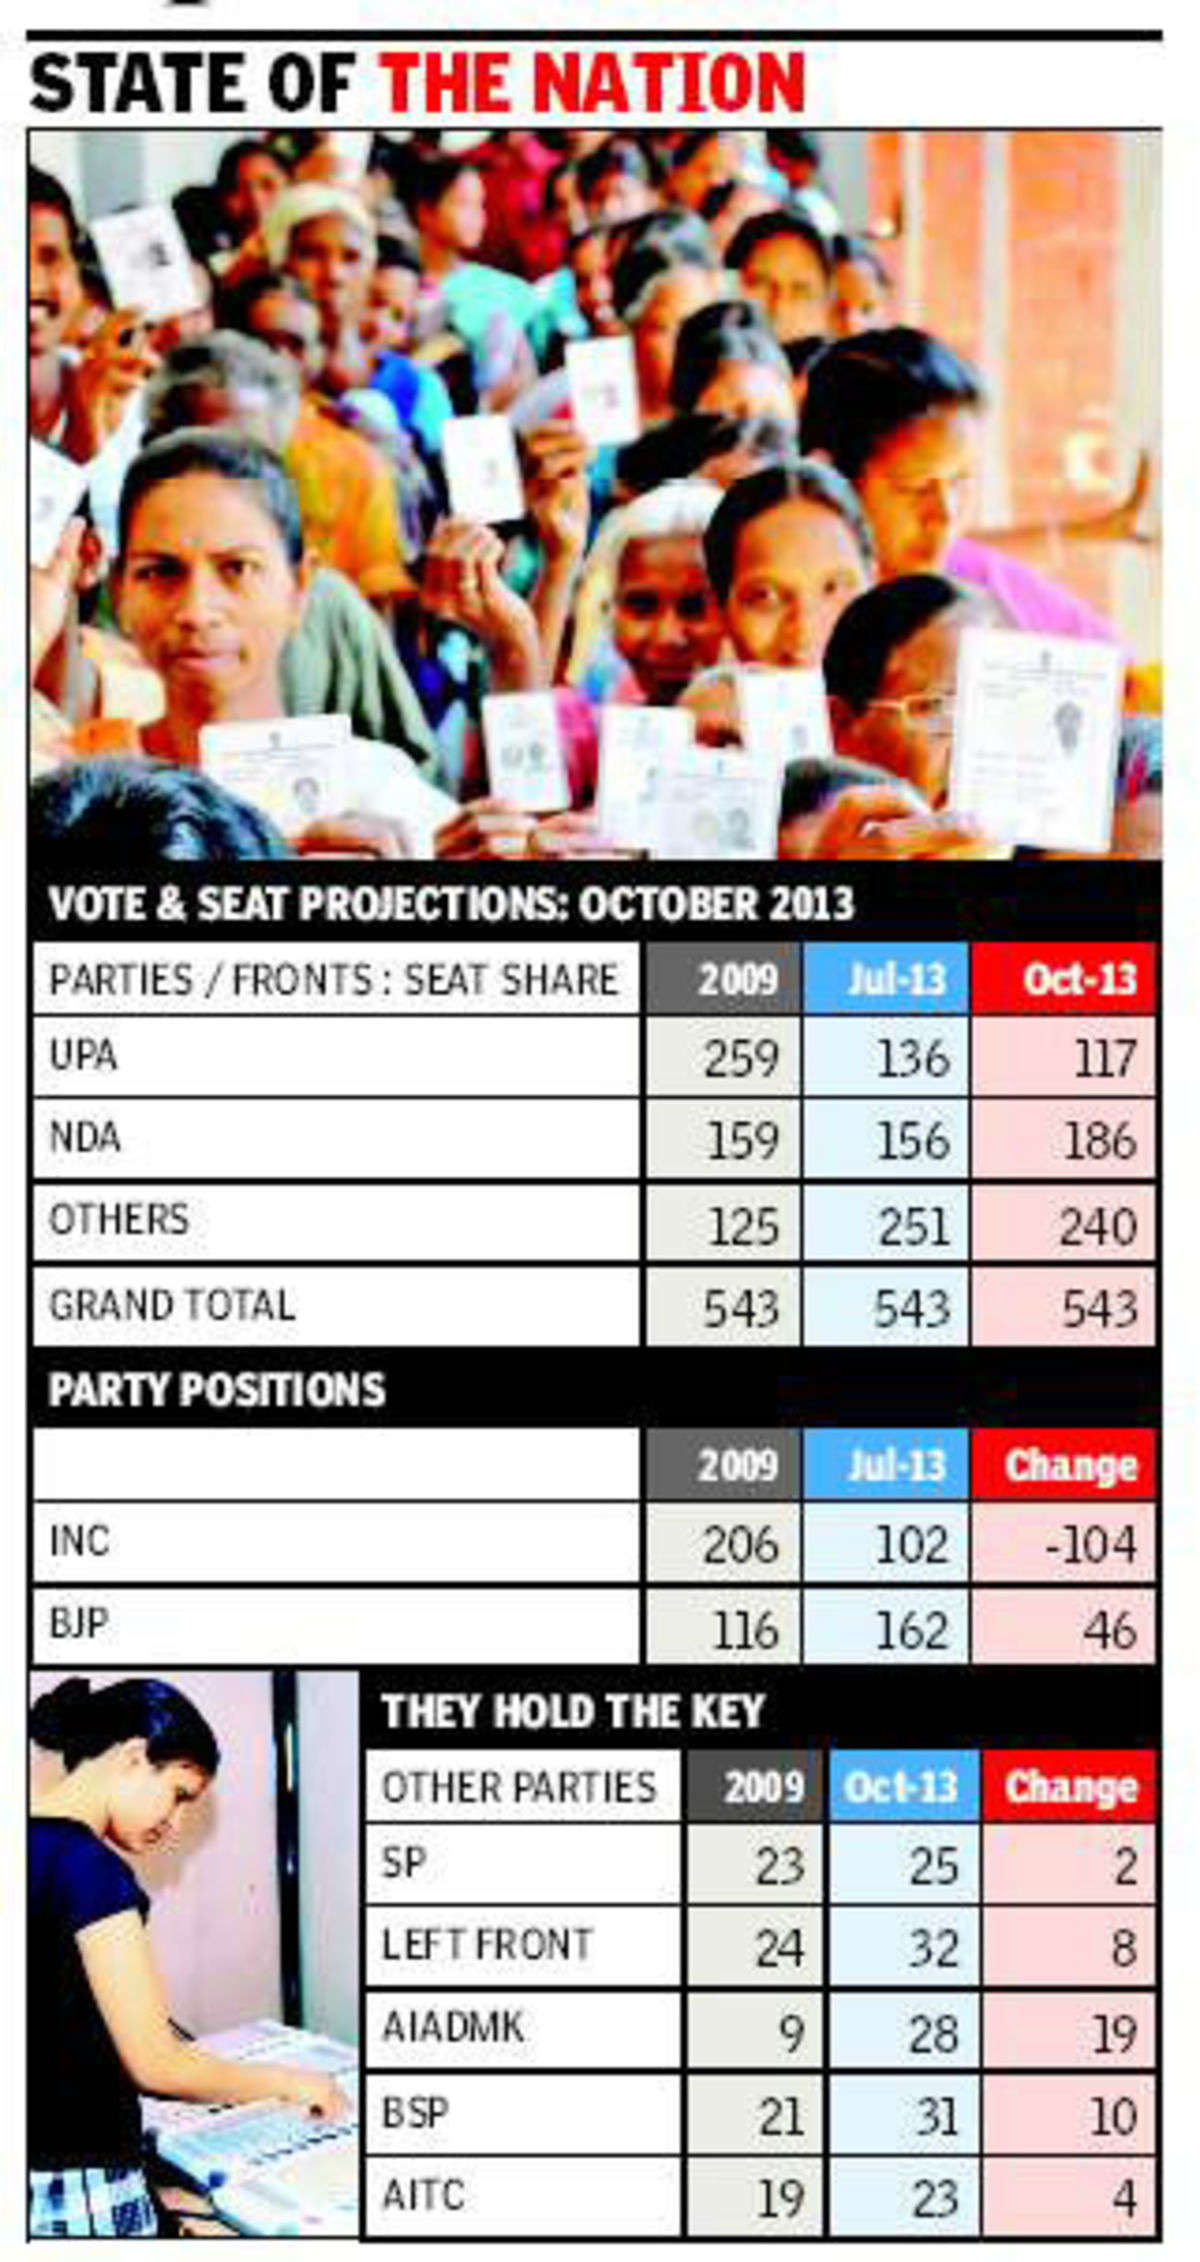 BJP to be single largest party in 2014 Lok Sabha election